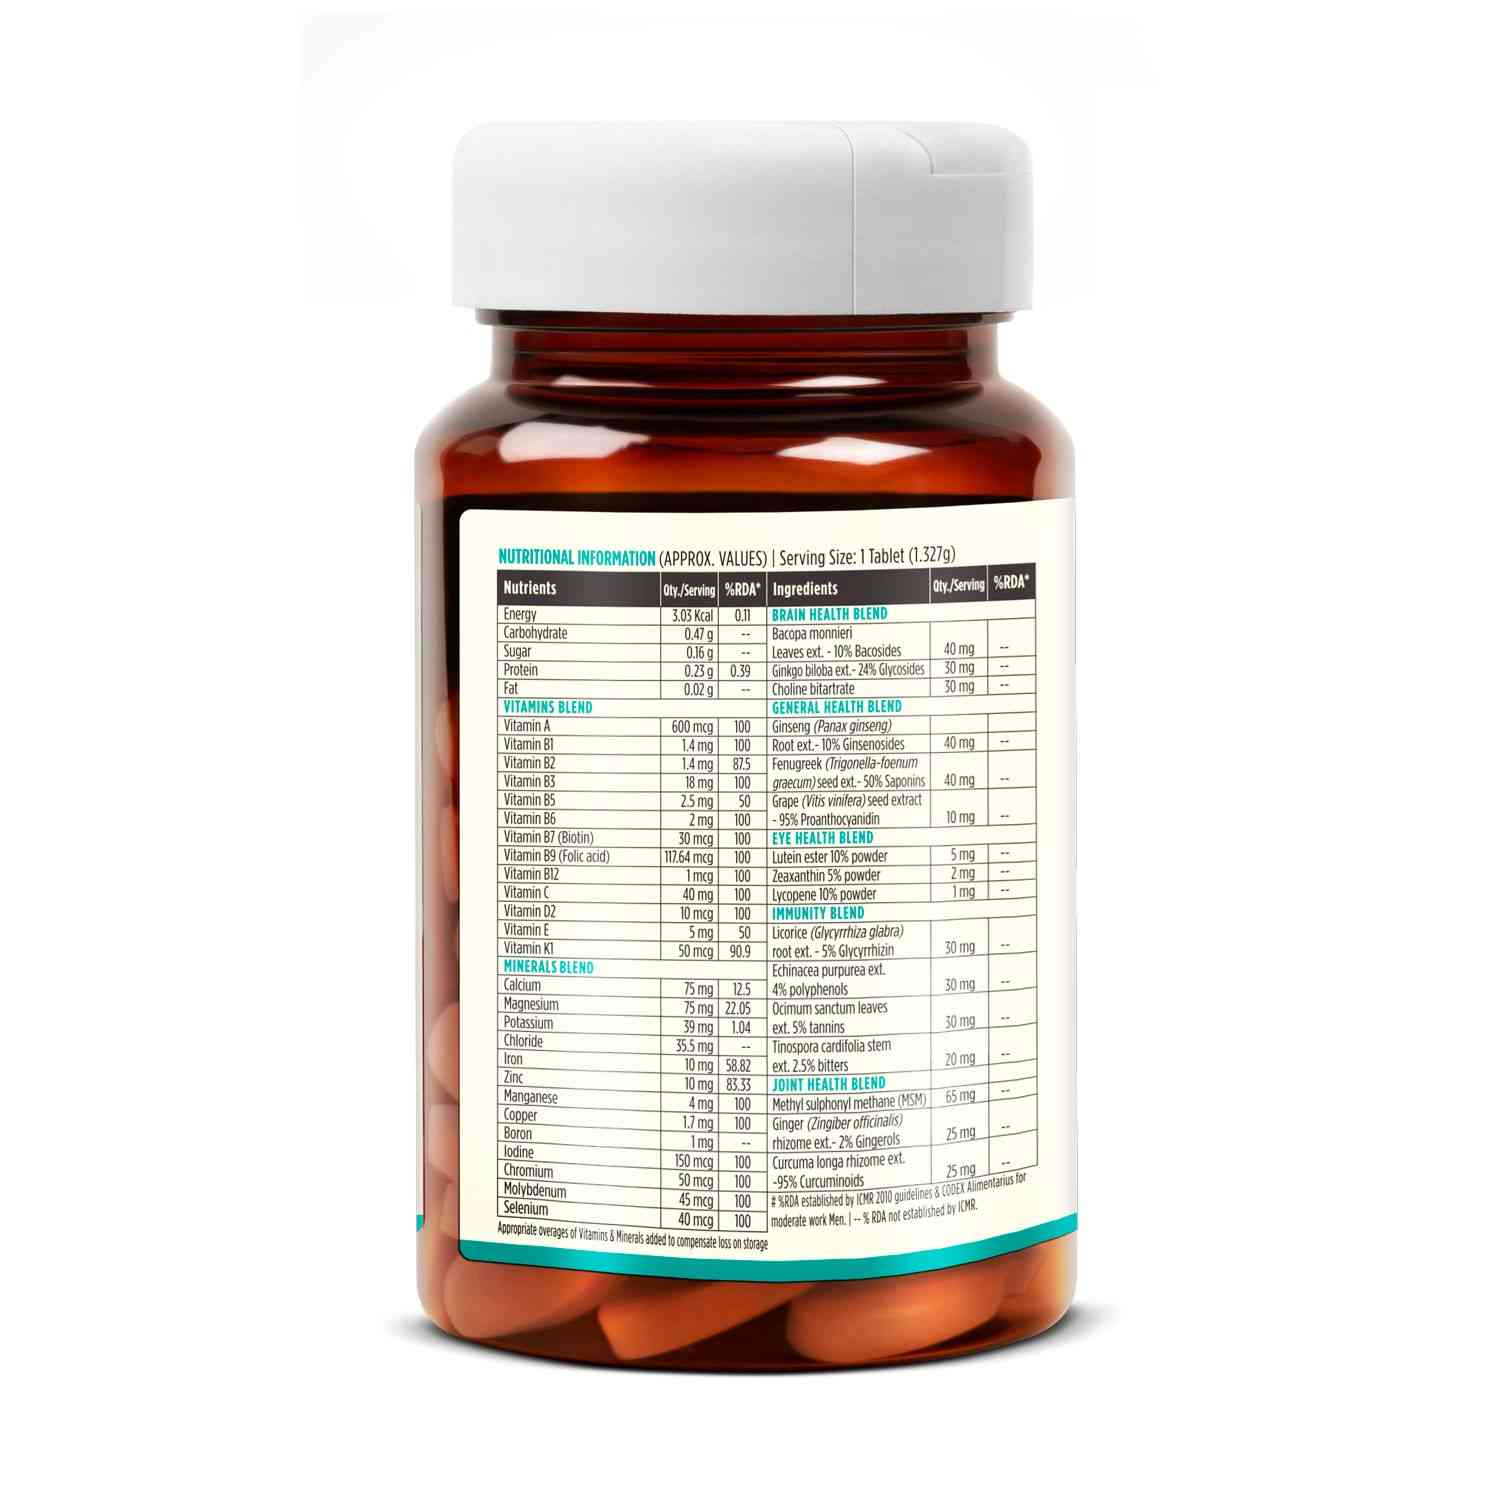 Liveasy Wellness Multivitamin 50+ - With Brain And Joint Health Blend - - Bottle Of 60